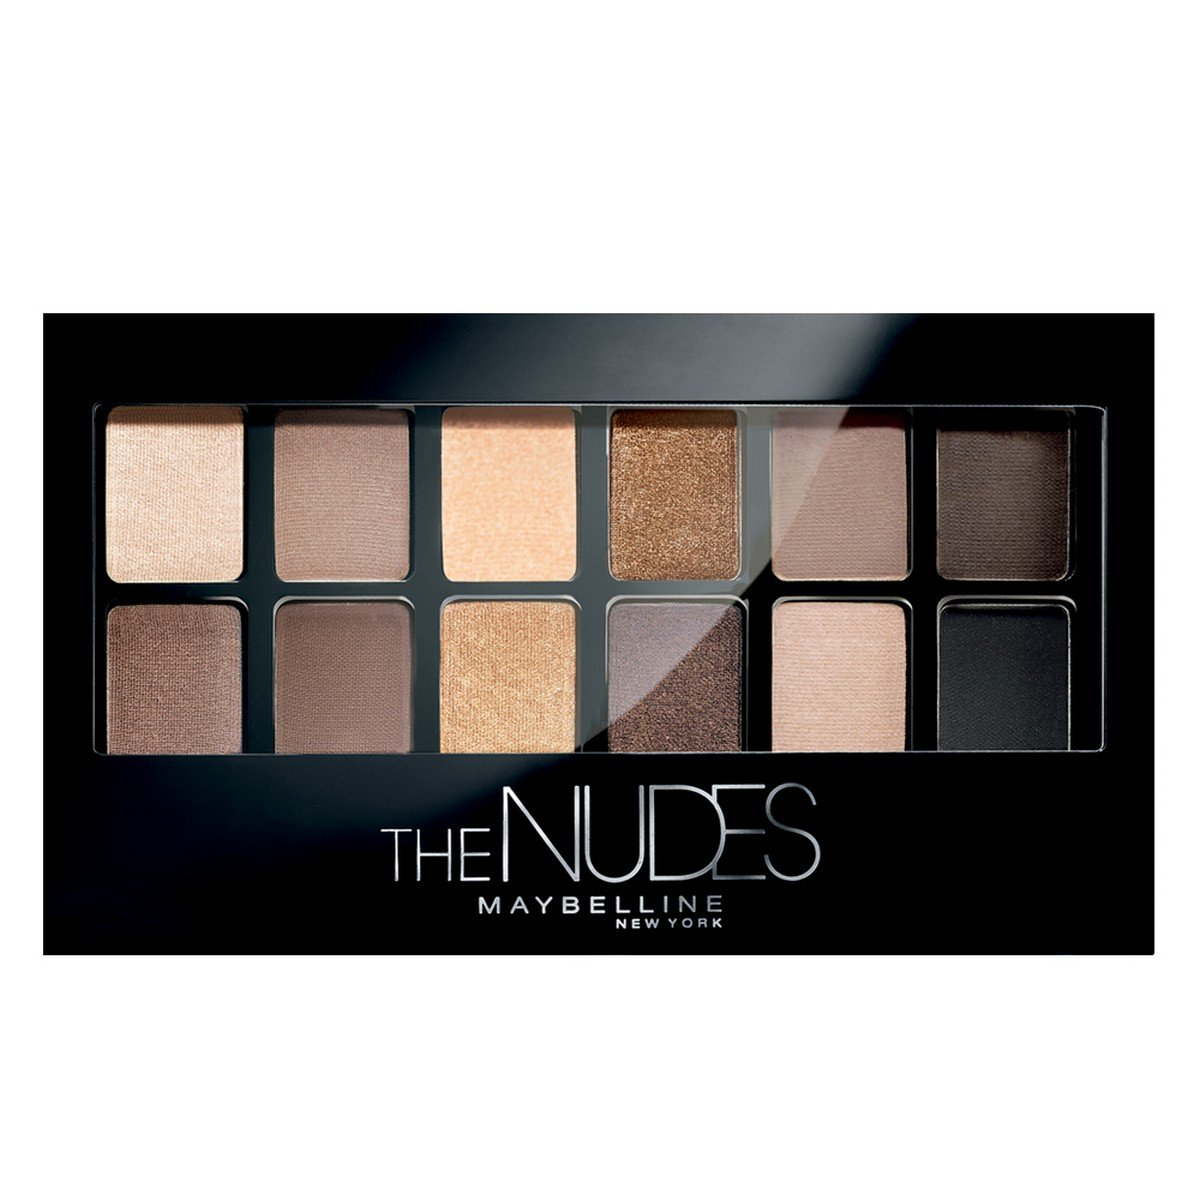 Maybelline New York The Nudes Palette Eyeshadow